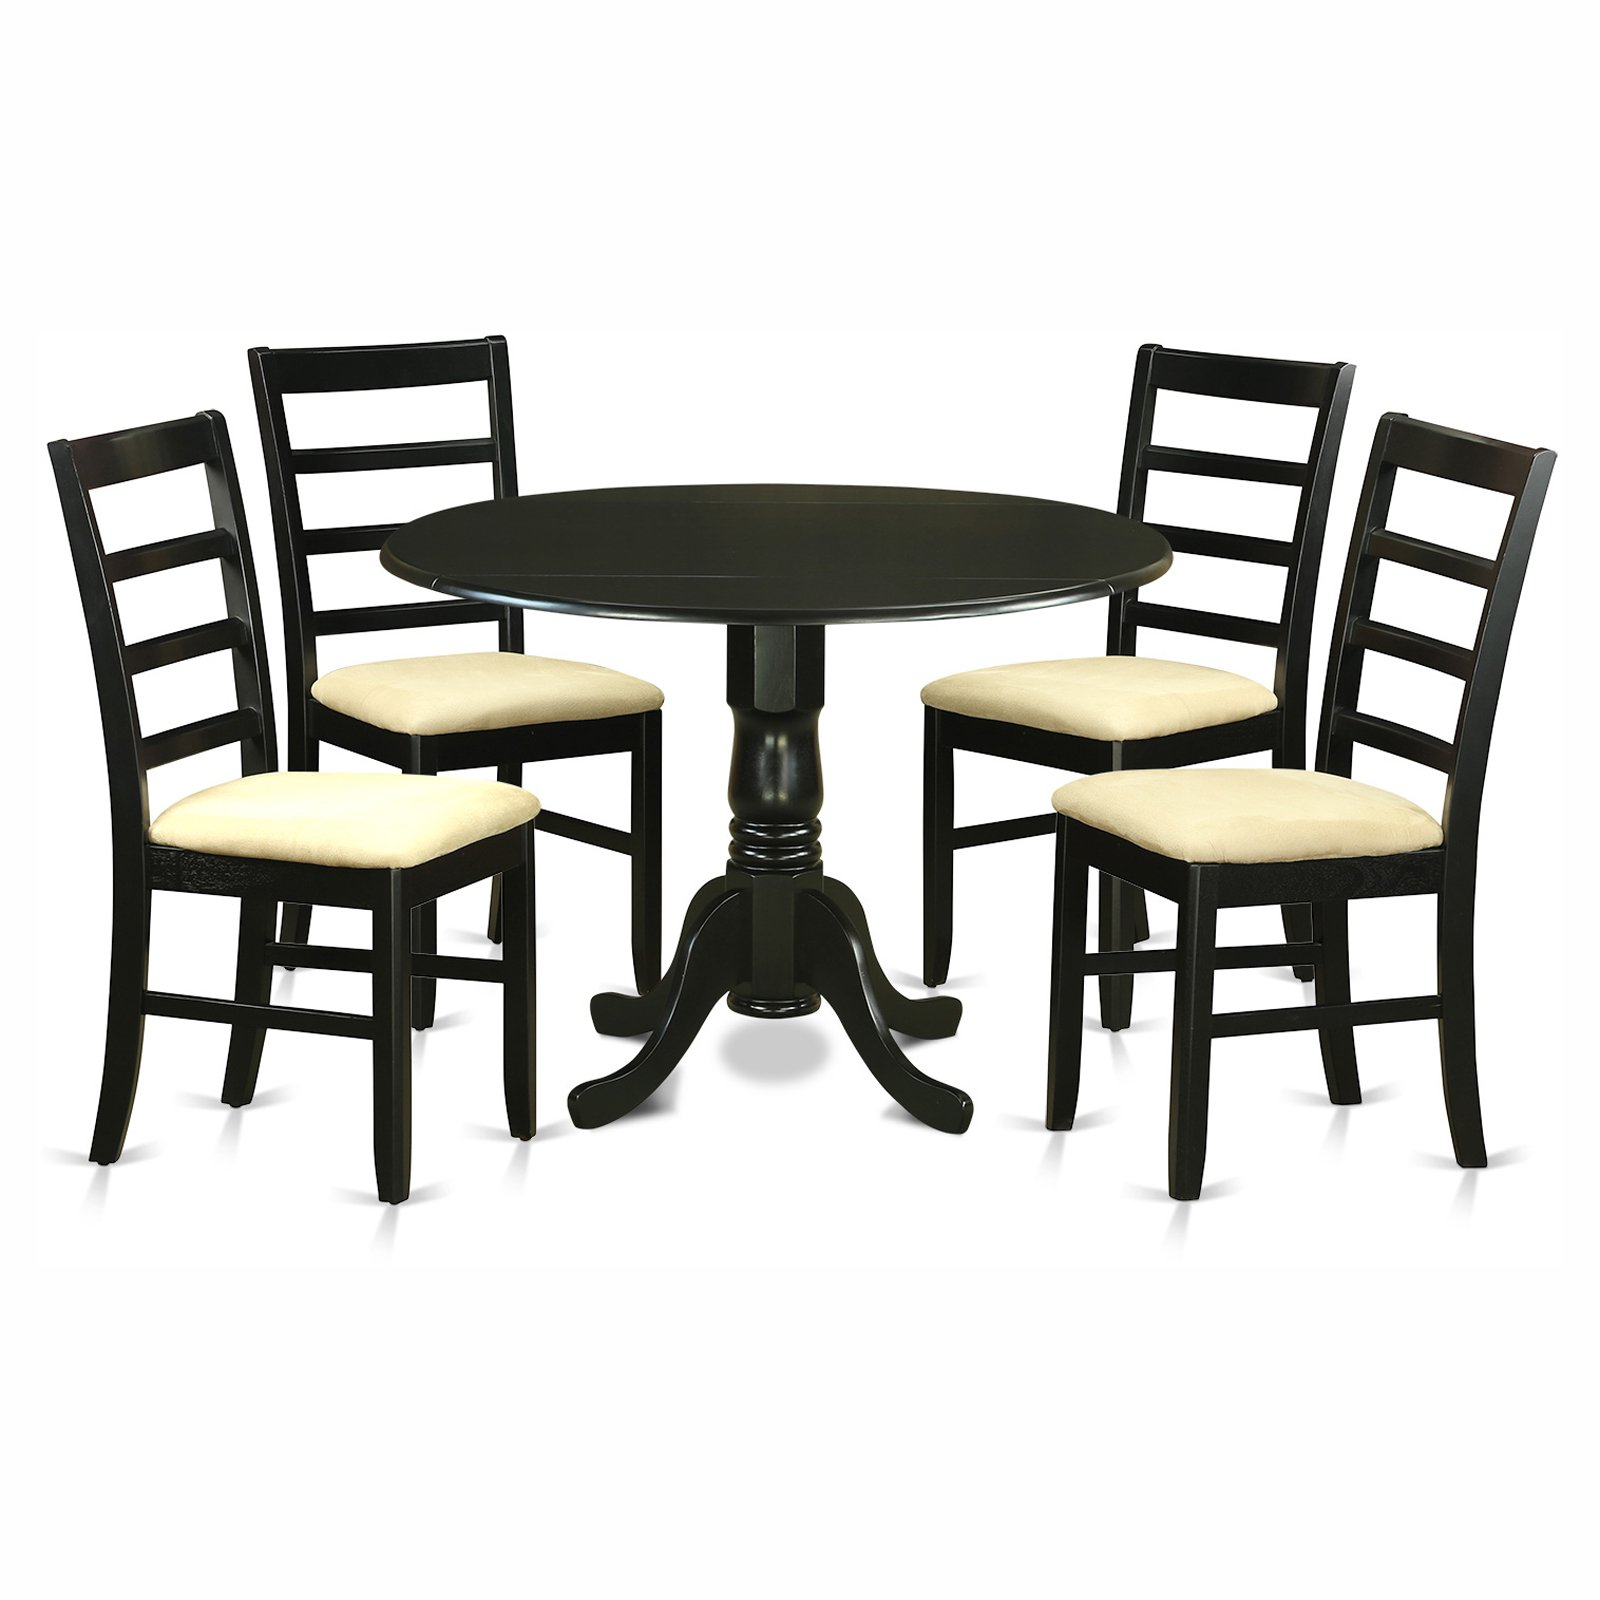 East West Furniture Dublin 5 Piece Drop Leaf Dining Table Set with Parfait Microfiber Seat Chairs